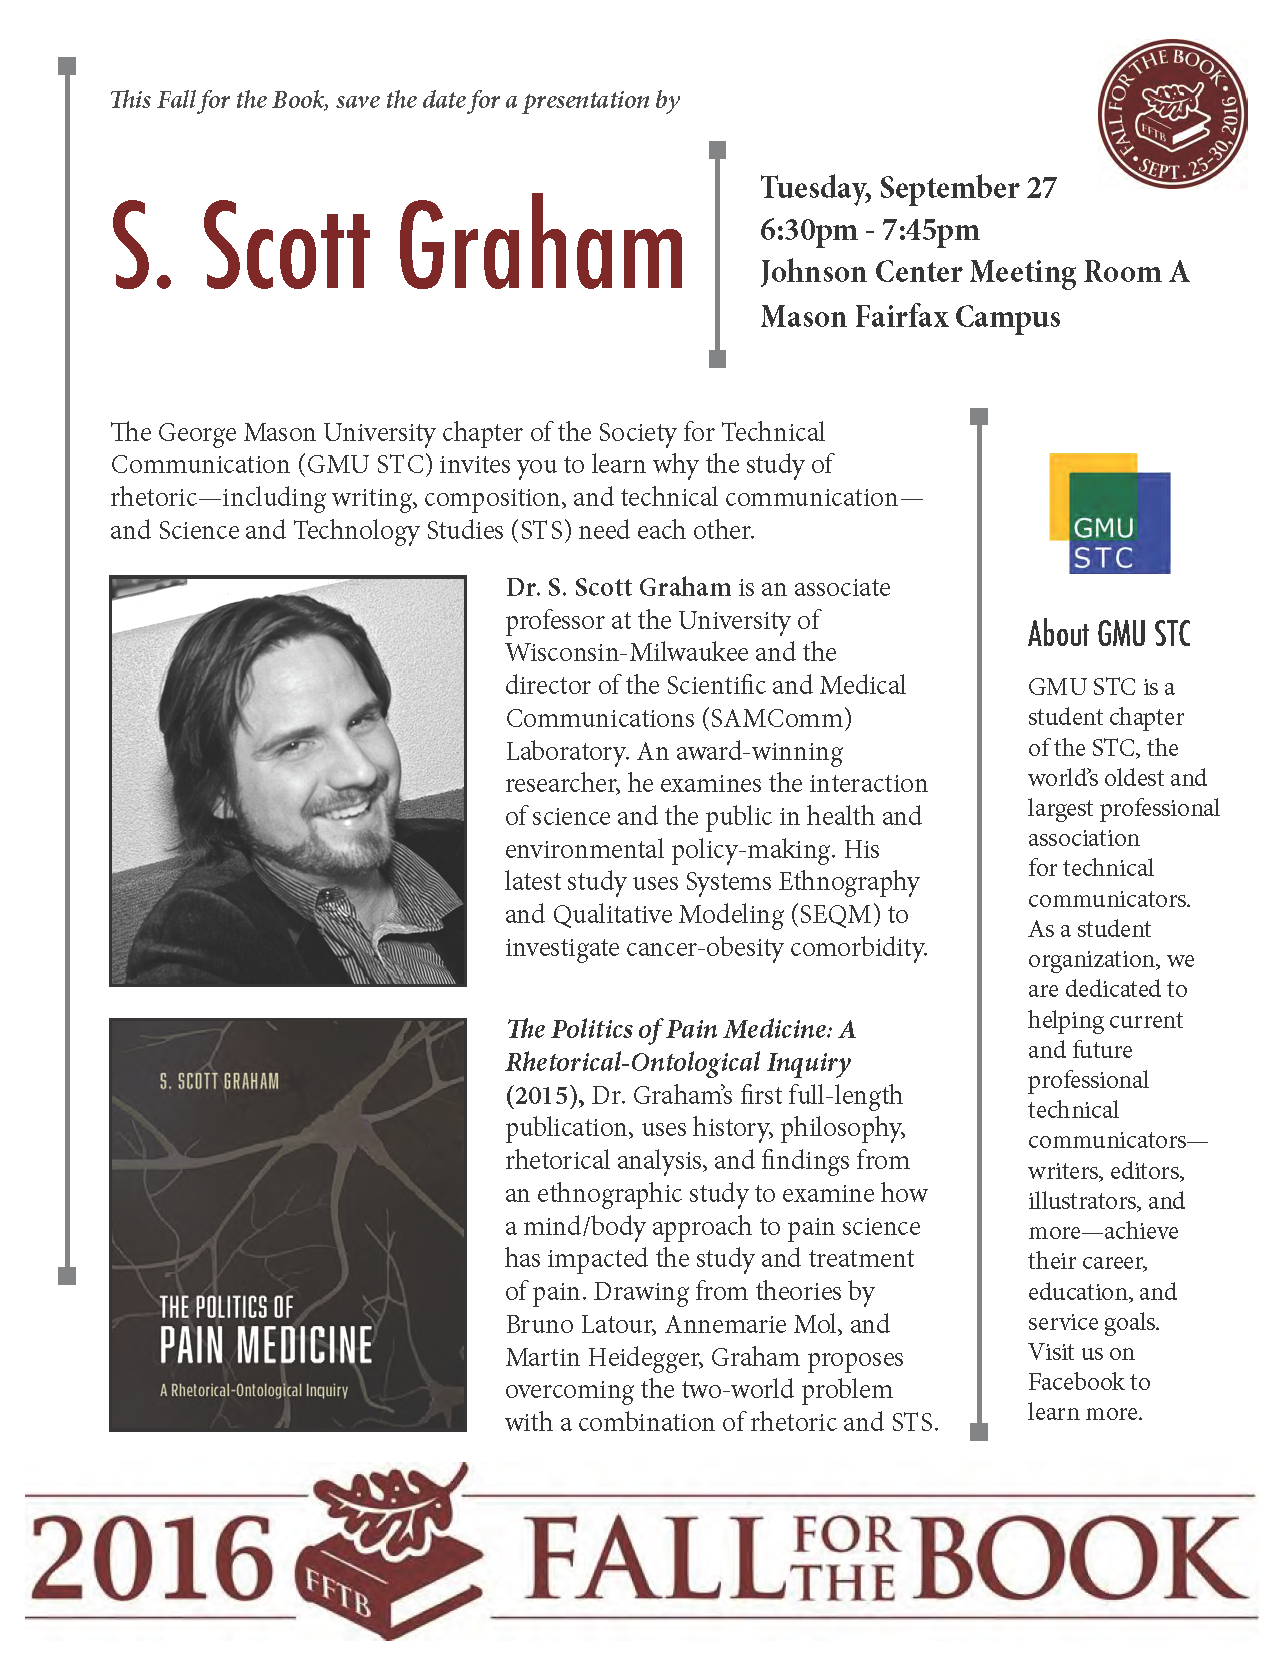 Image of the flyer PDF about Fall for the Book presentation.